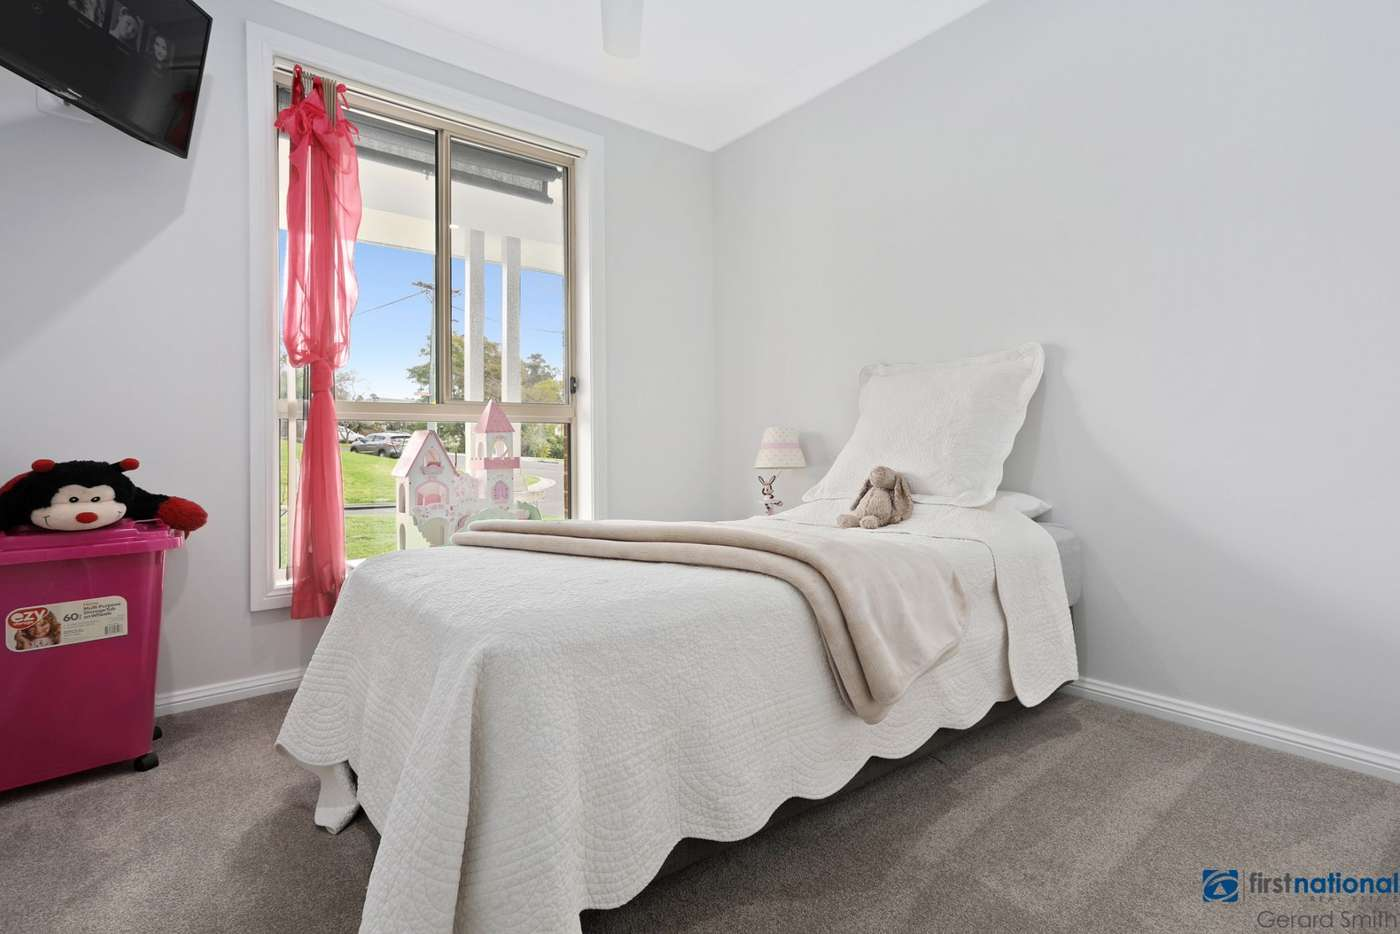 Seventh view of Homely house listing, 1 Thompson Place, Tahmoor NSW 2573